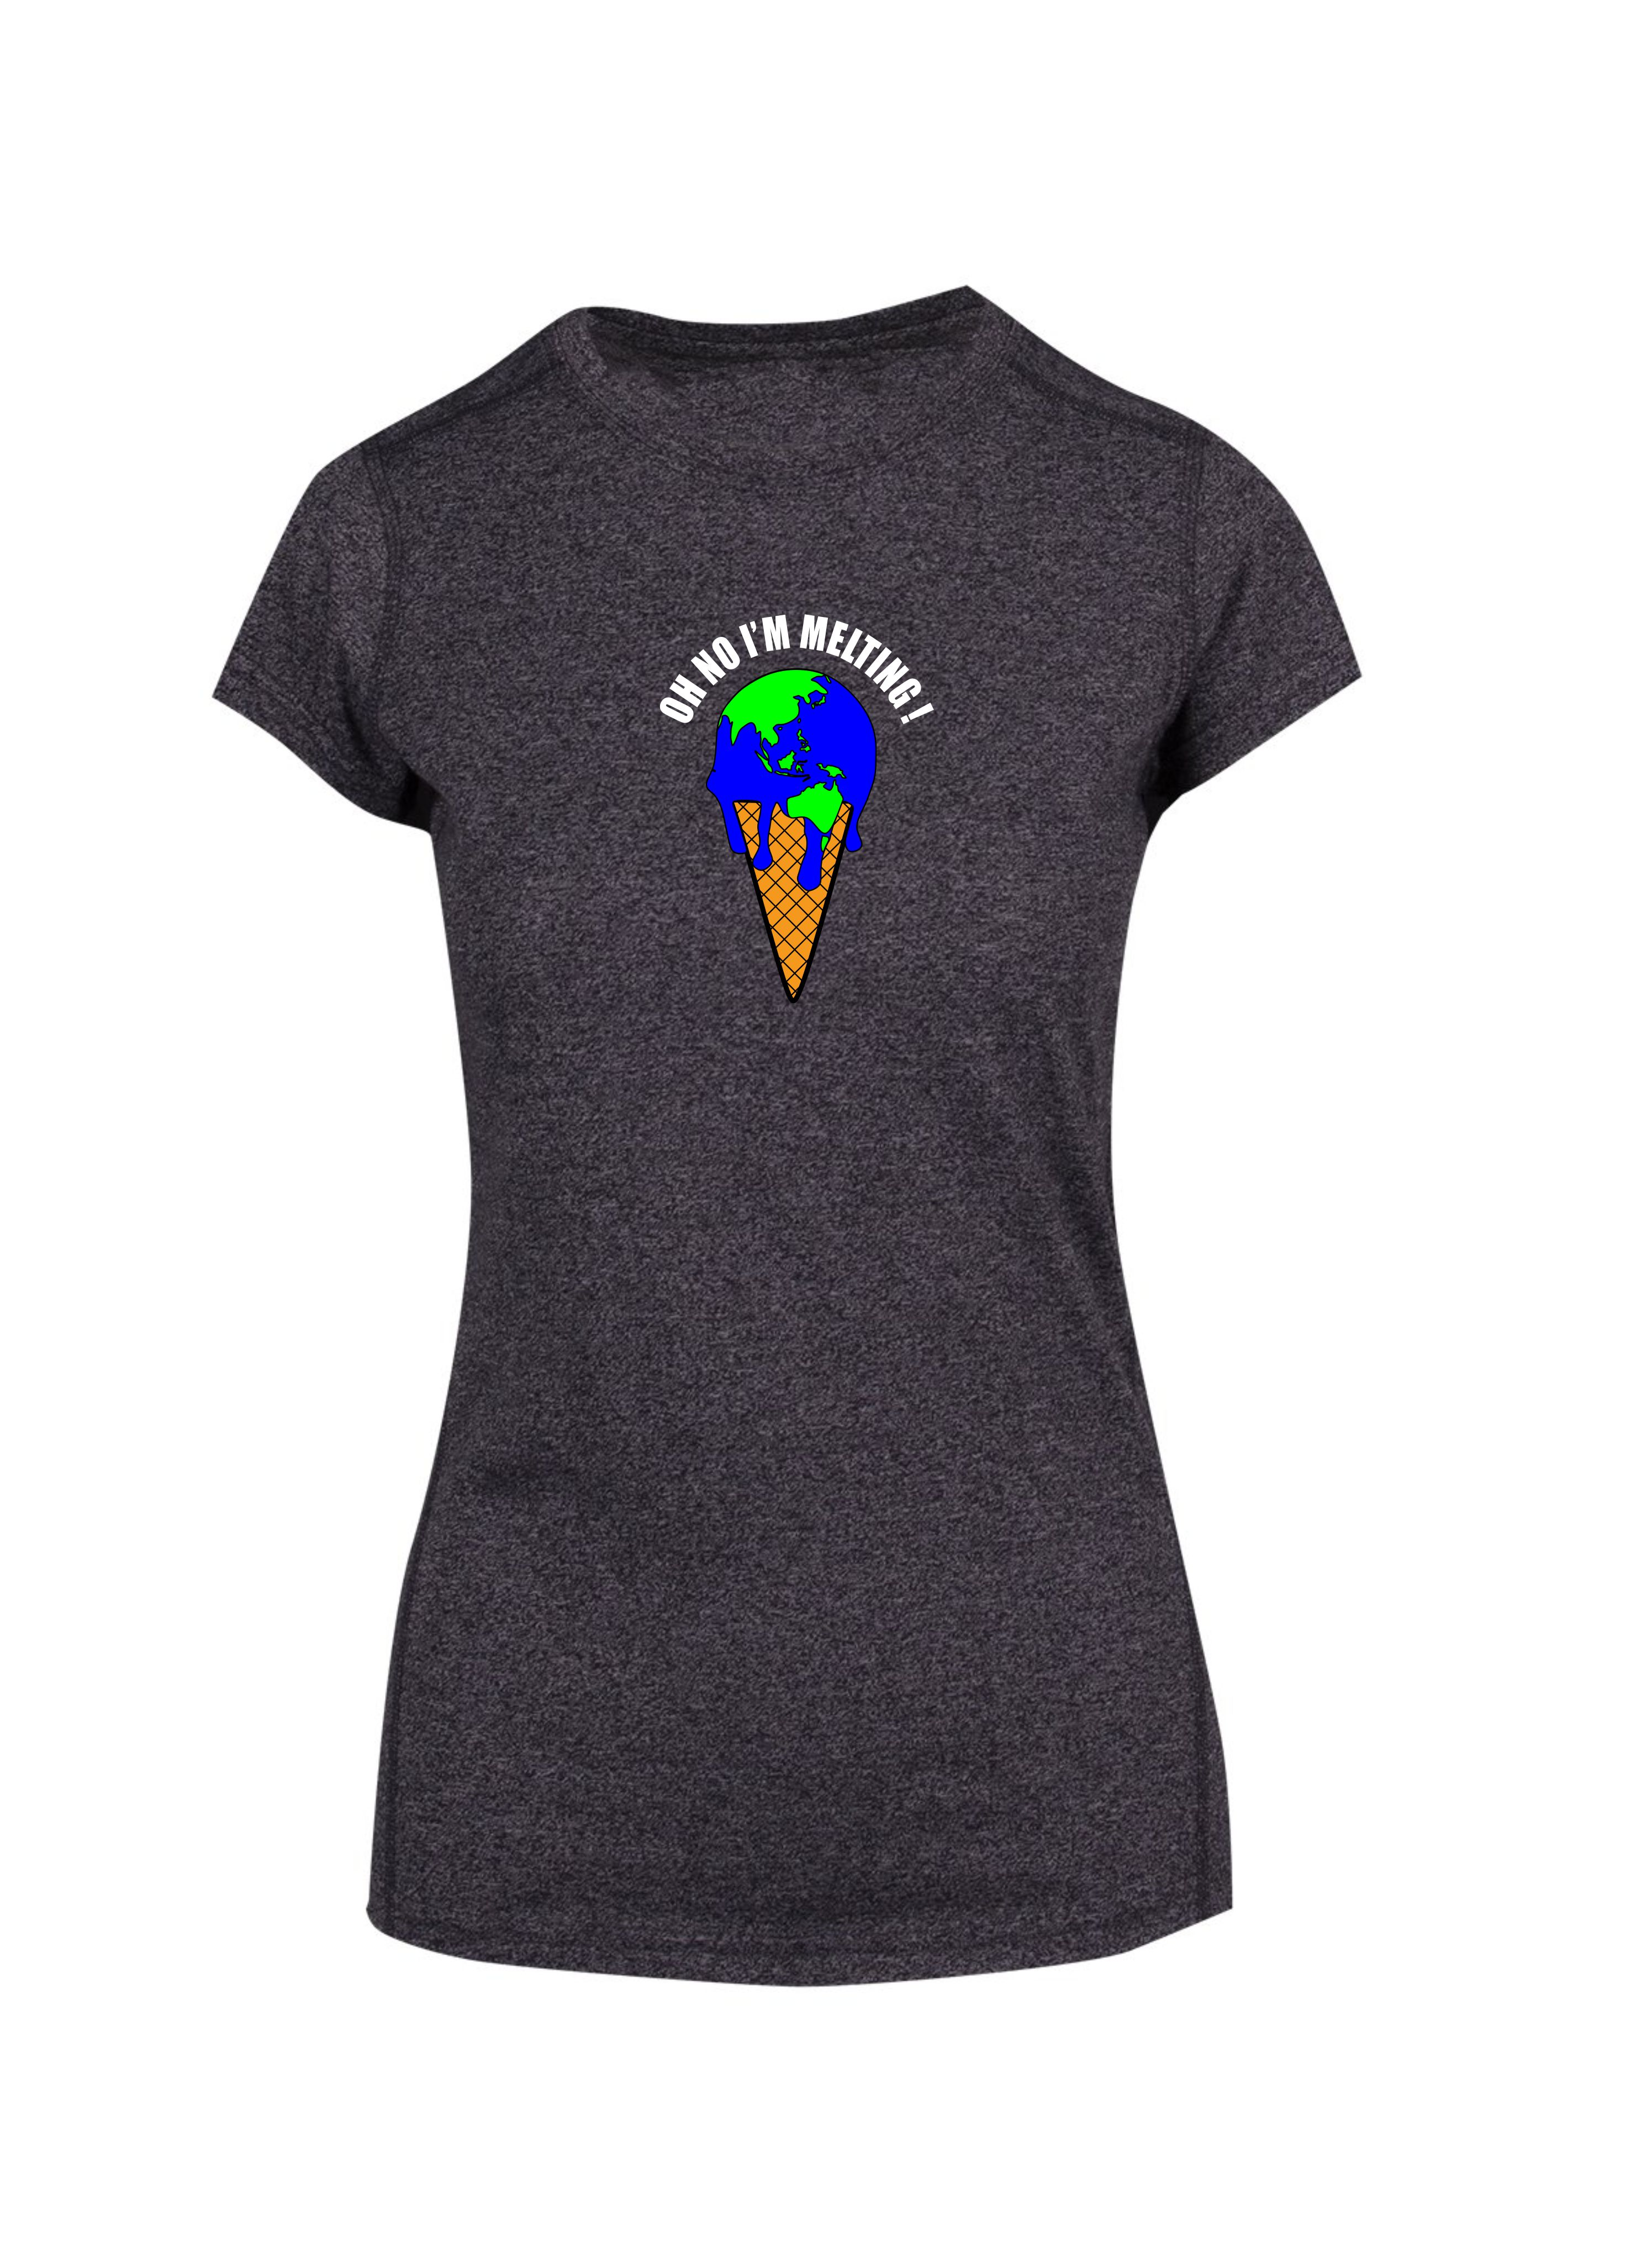 Stemm Melting Earth Tshirt - Ladies